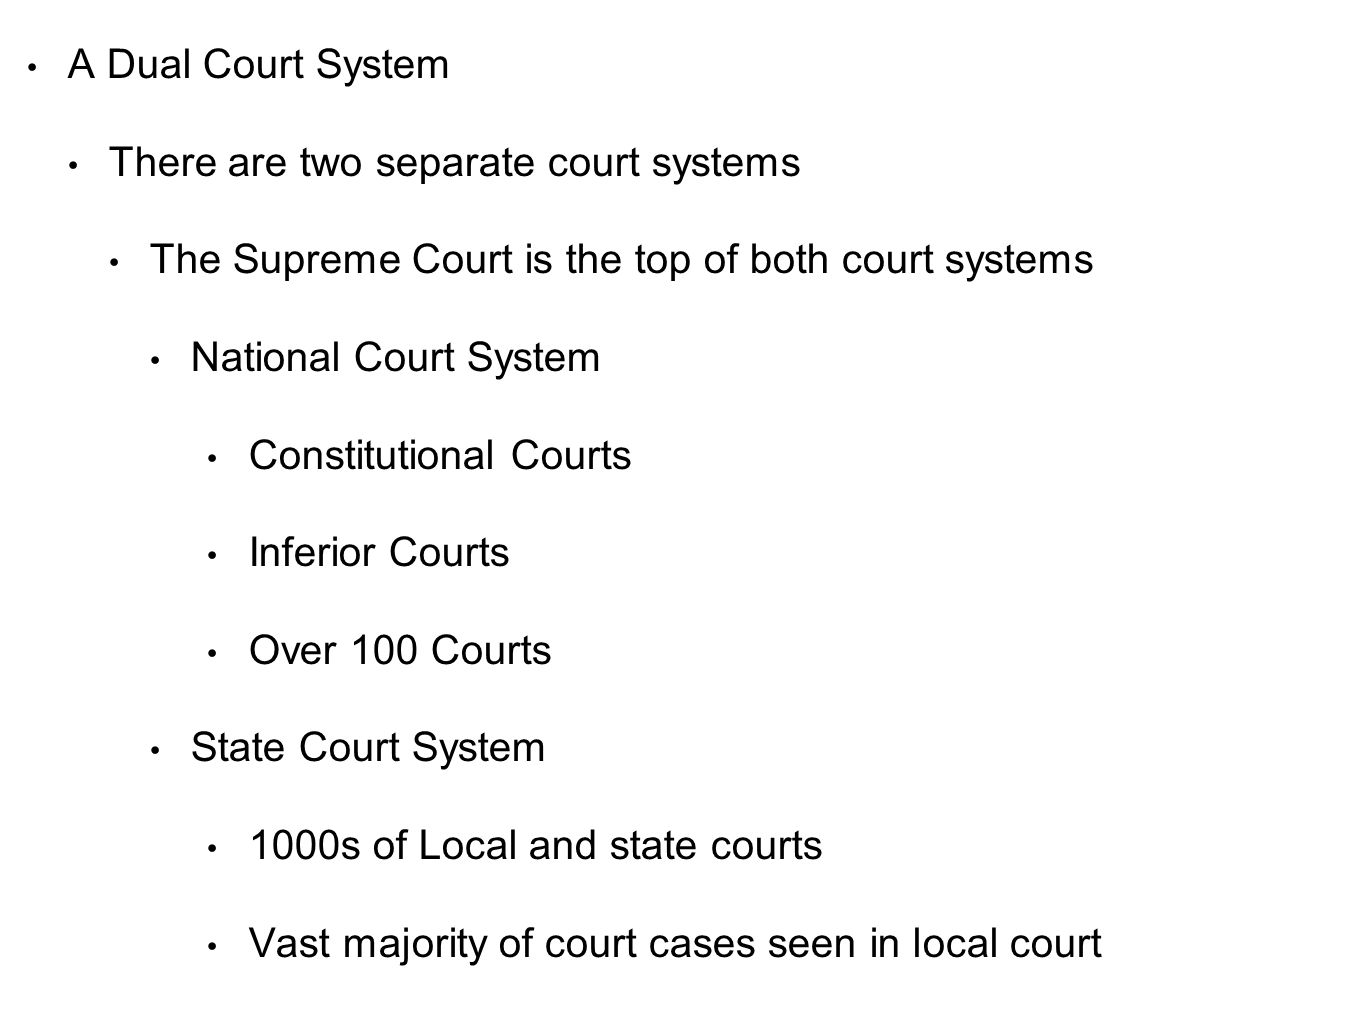 A Dual Court System There are two separate court systems. The Supreme Court is the top of both court systems.